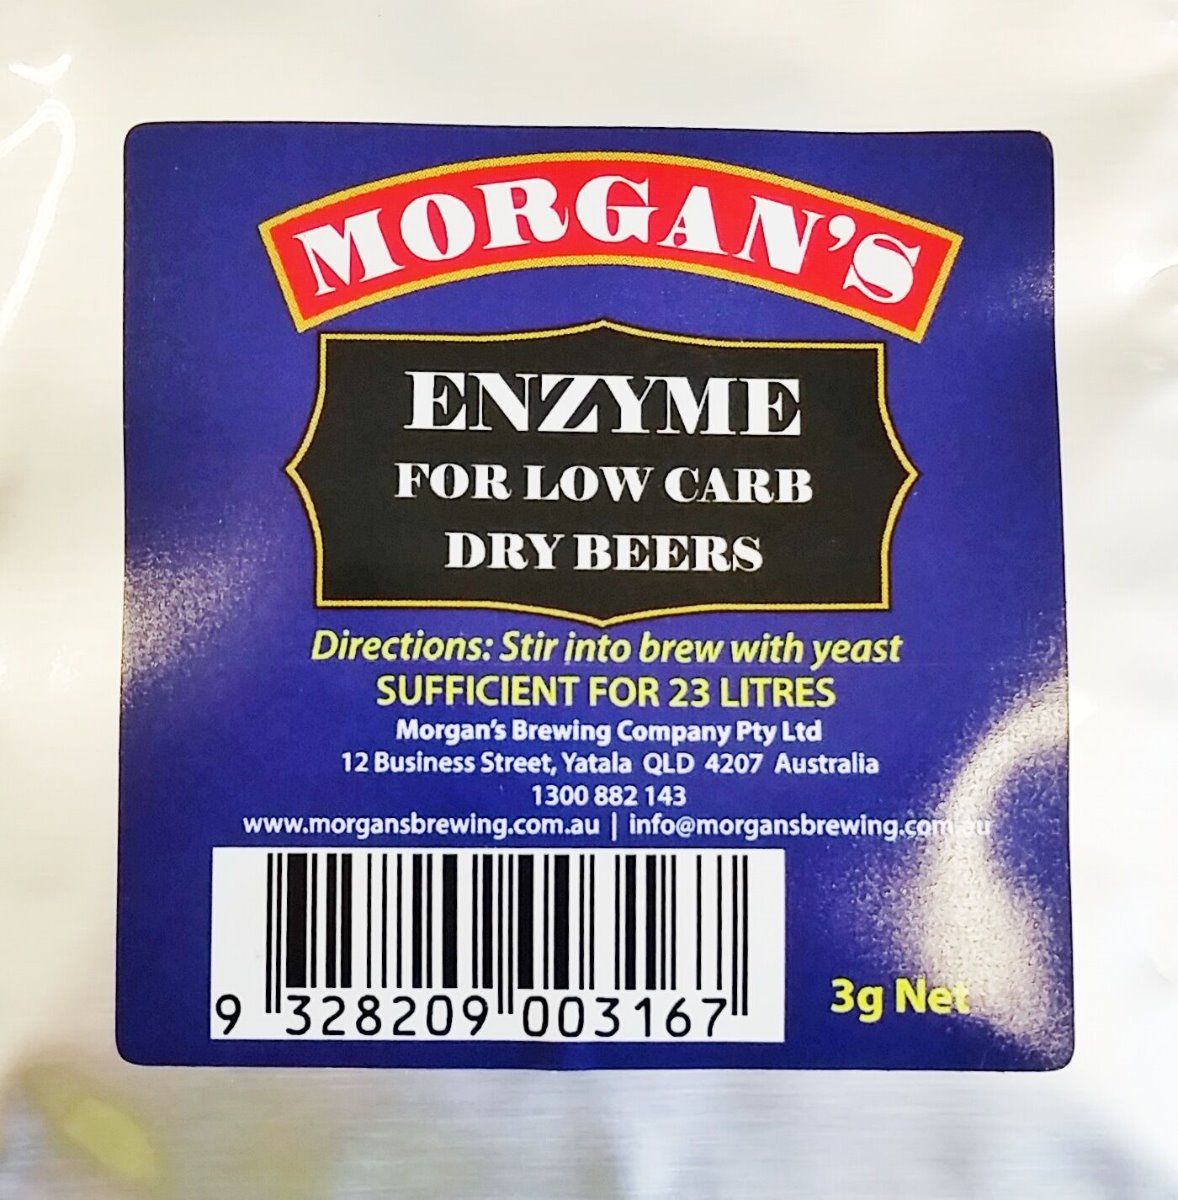 Morgan's Low Carb Enzyme